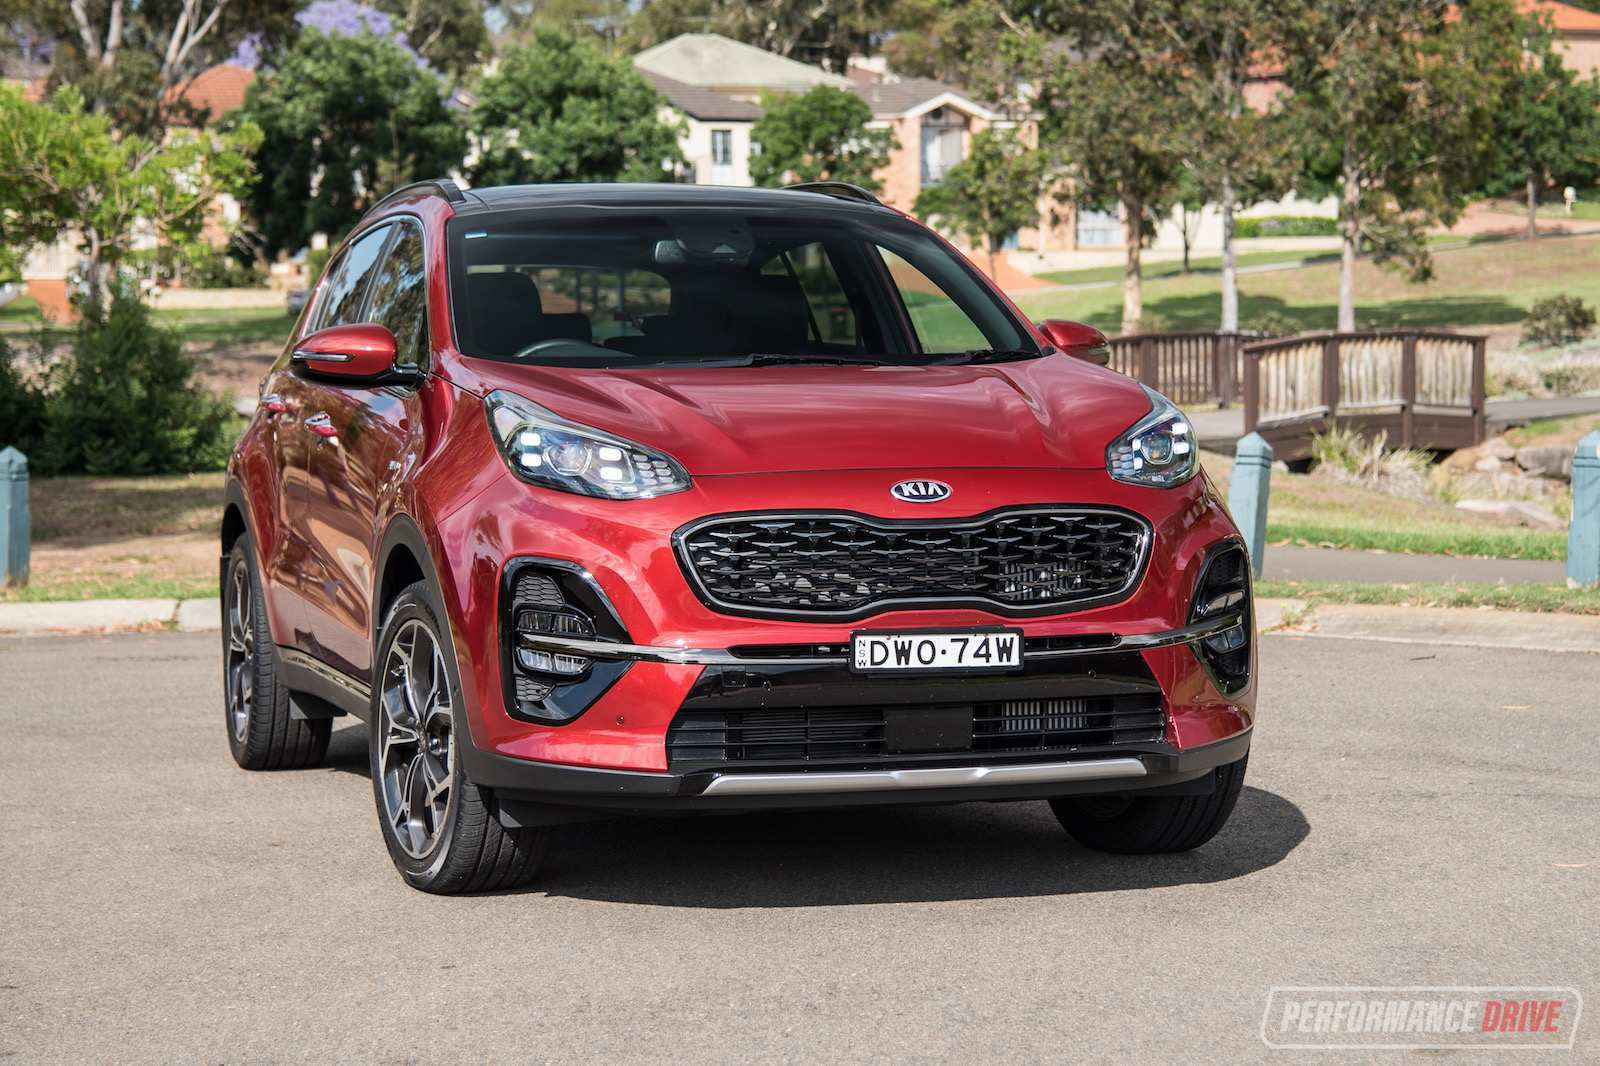 63 The Best 2019 Kia Sportage Review Price And Review